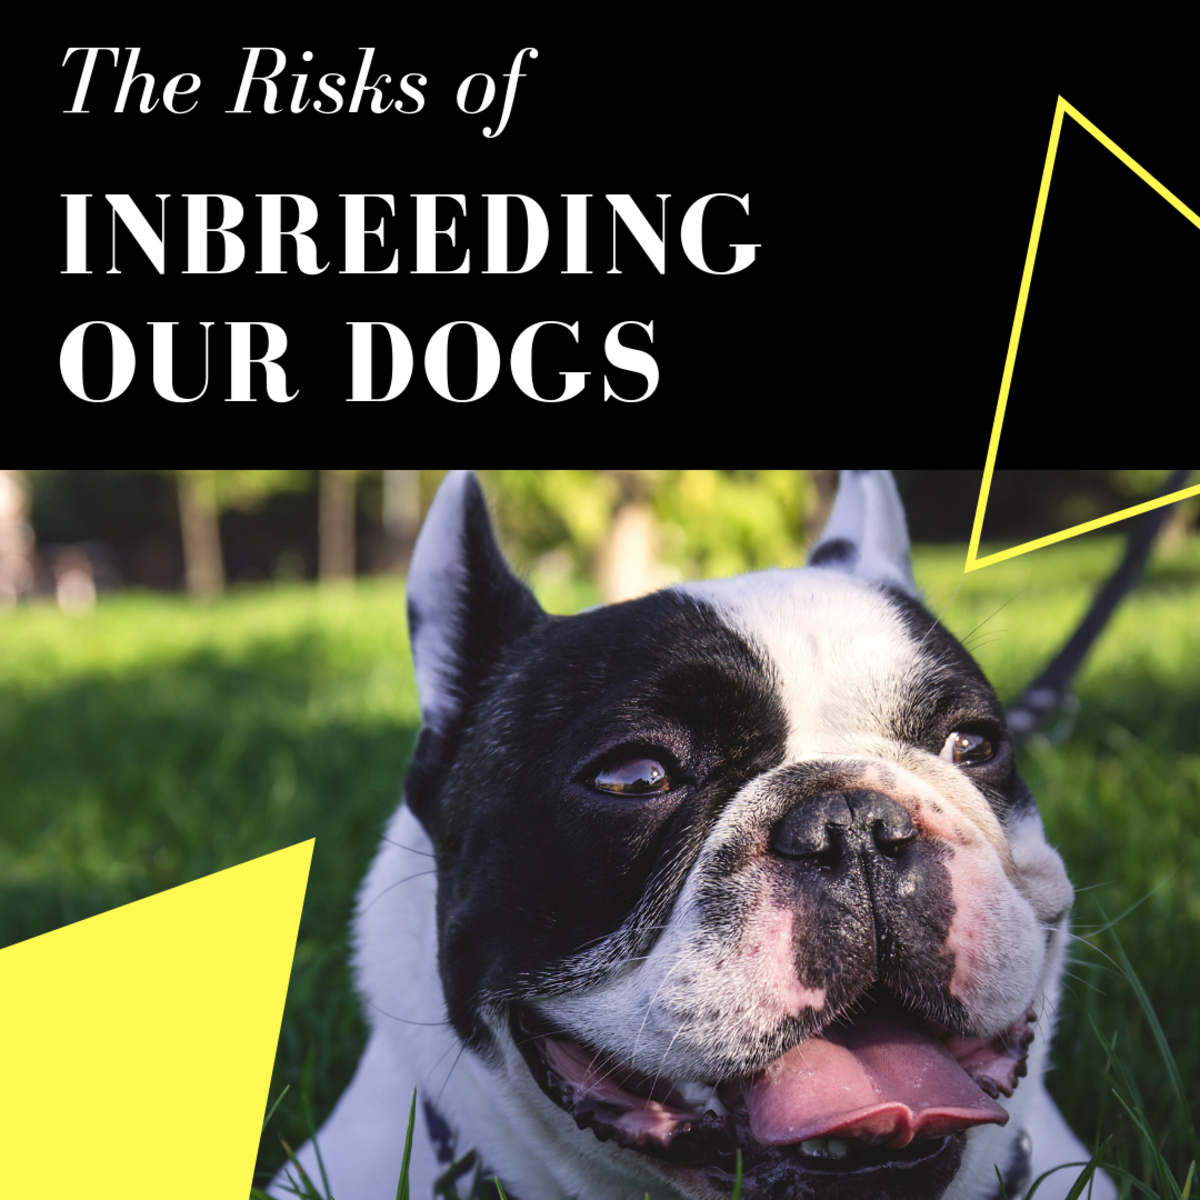 The Consequences of Inbreeding Our Dogs